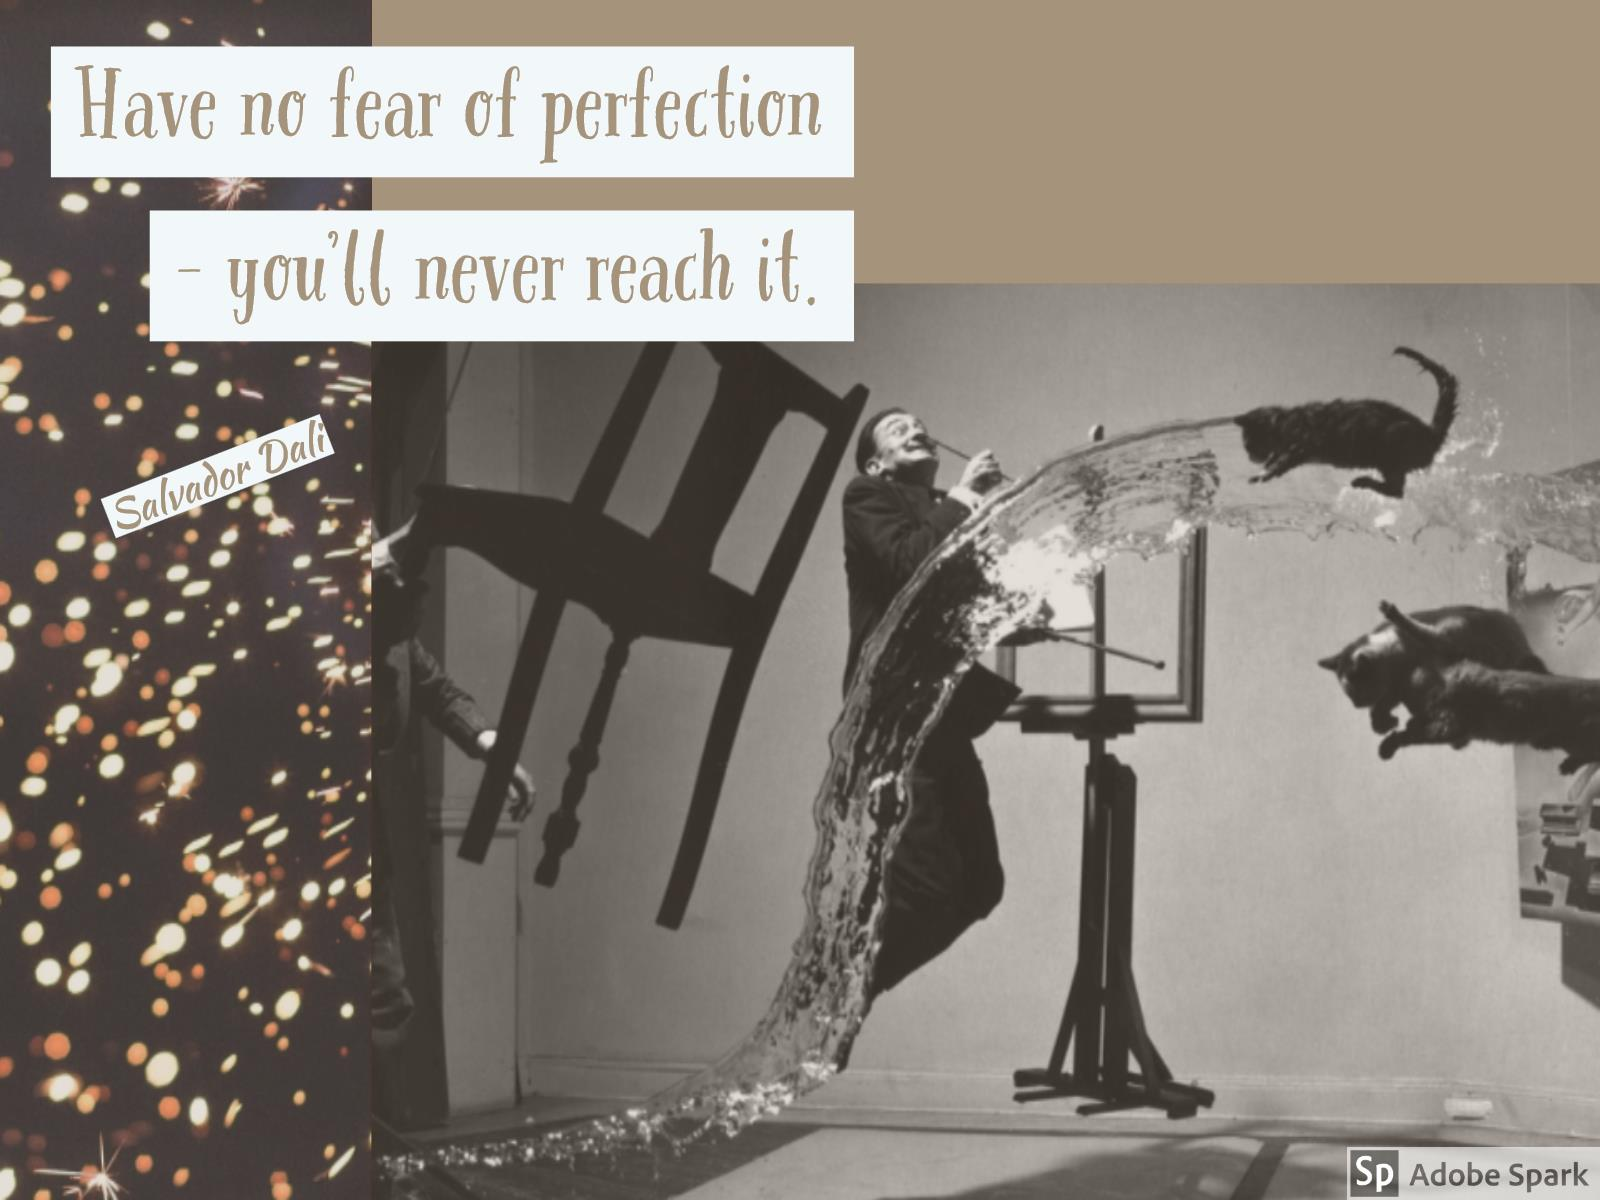 Have no fear of perfection, you'll never make it